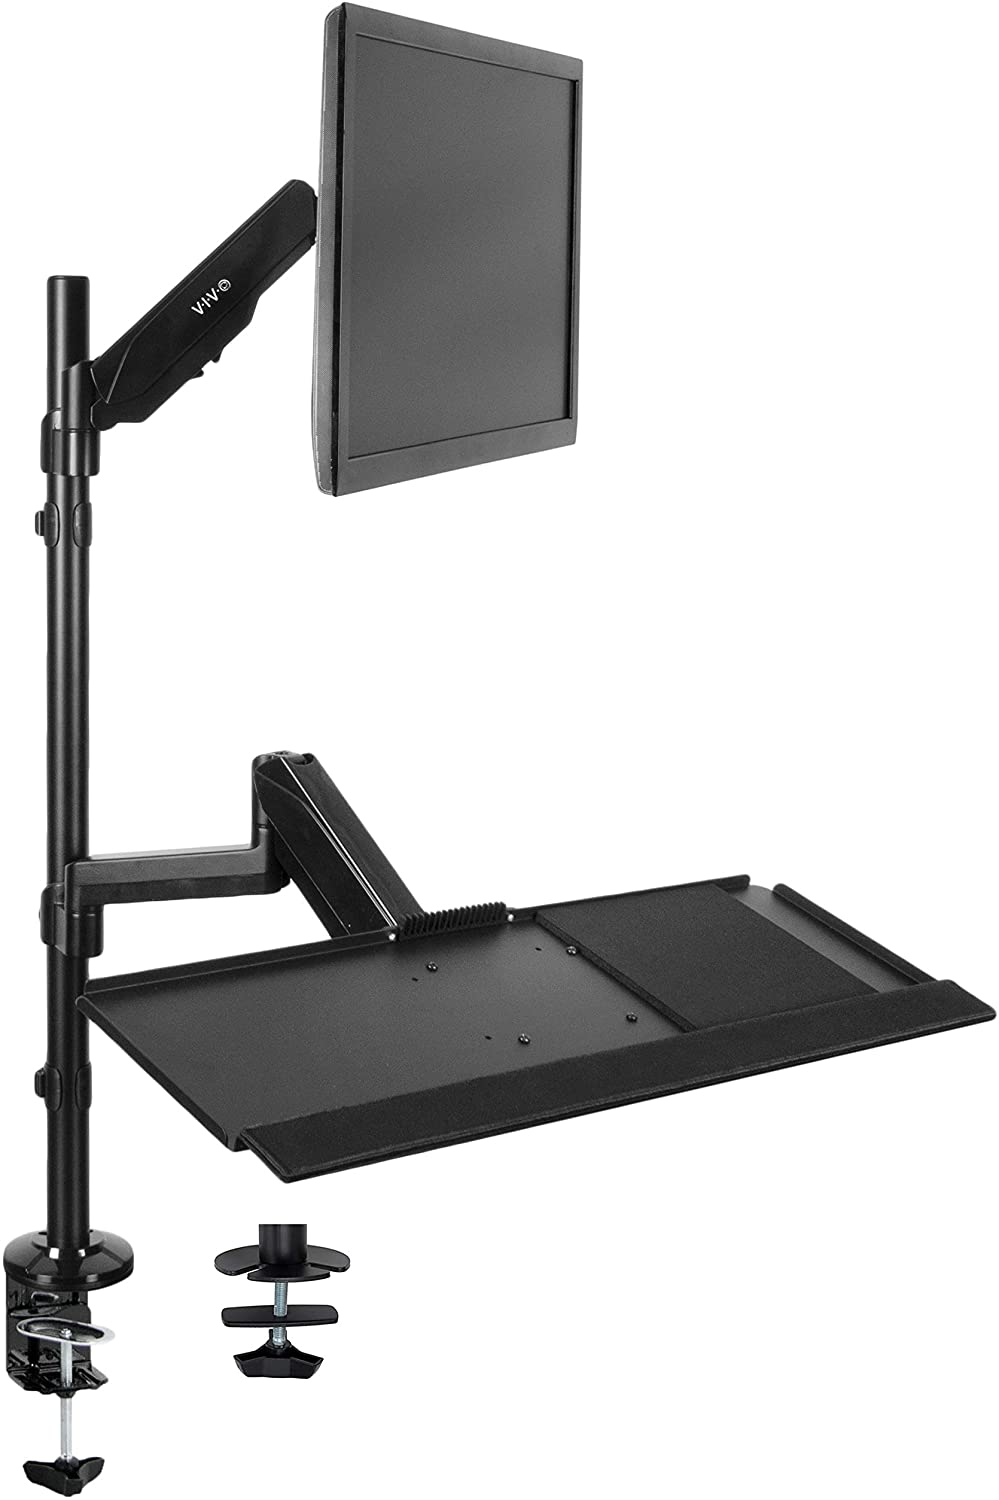 VIVO Sit-Stand Height Adjustable Pneumatic Spring Arm Keyboard Tray Desk Mount for 1 Screen up to 32 inches STAND-SIT1B